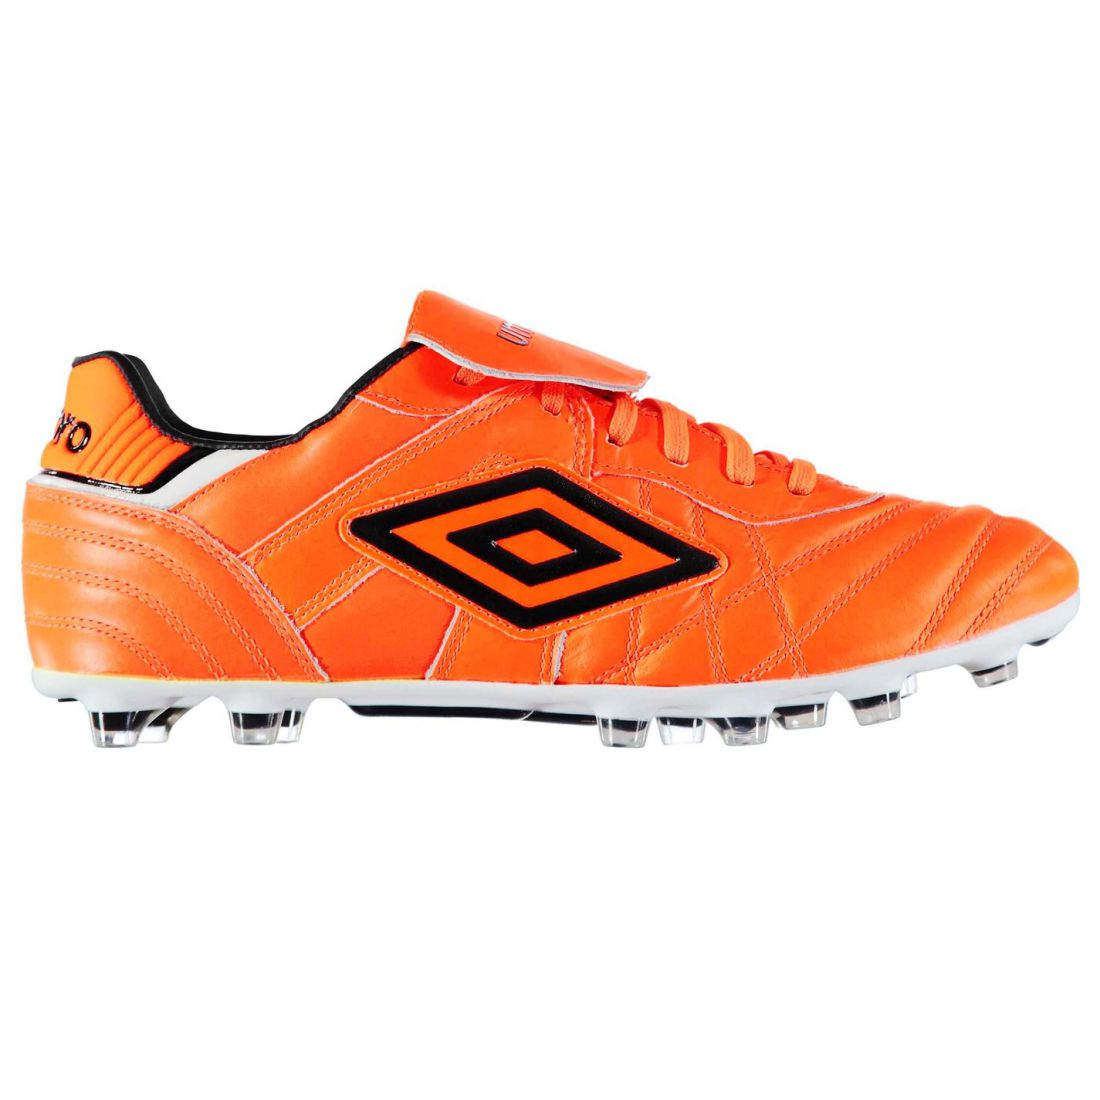 Umbro Mens Gents Speciali Eternal Pro HG Football Boots Footwear ... 70a55c5630146